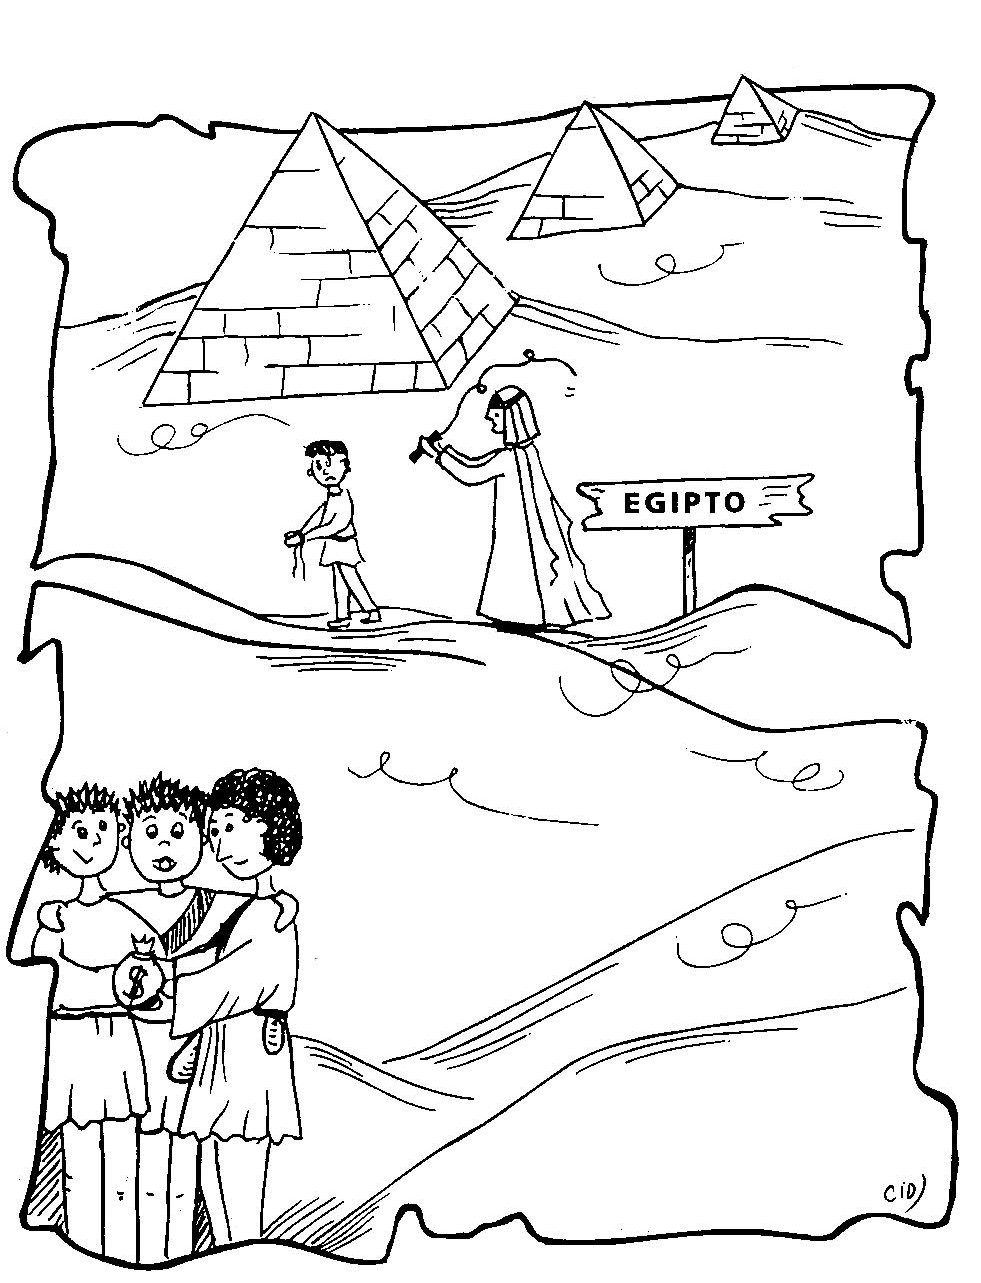 joseph in egypt coloring pages - photo#25